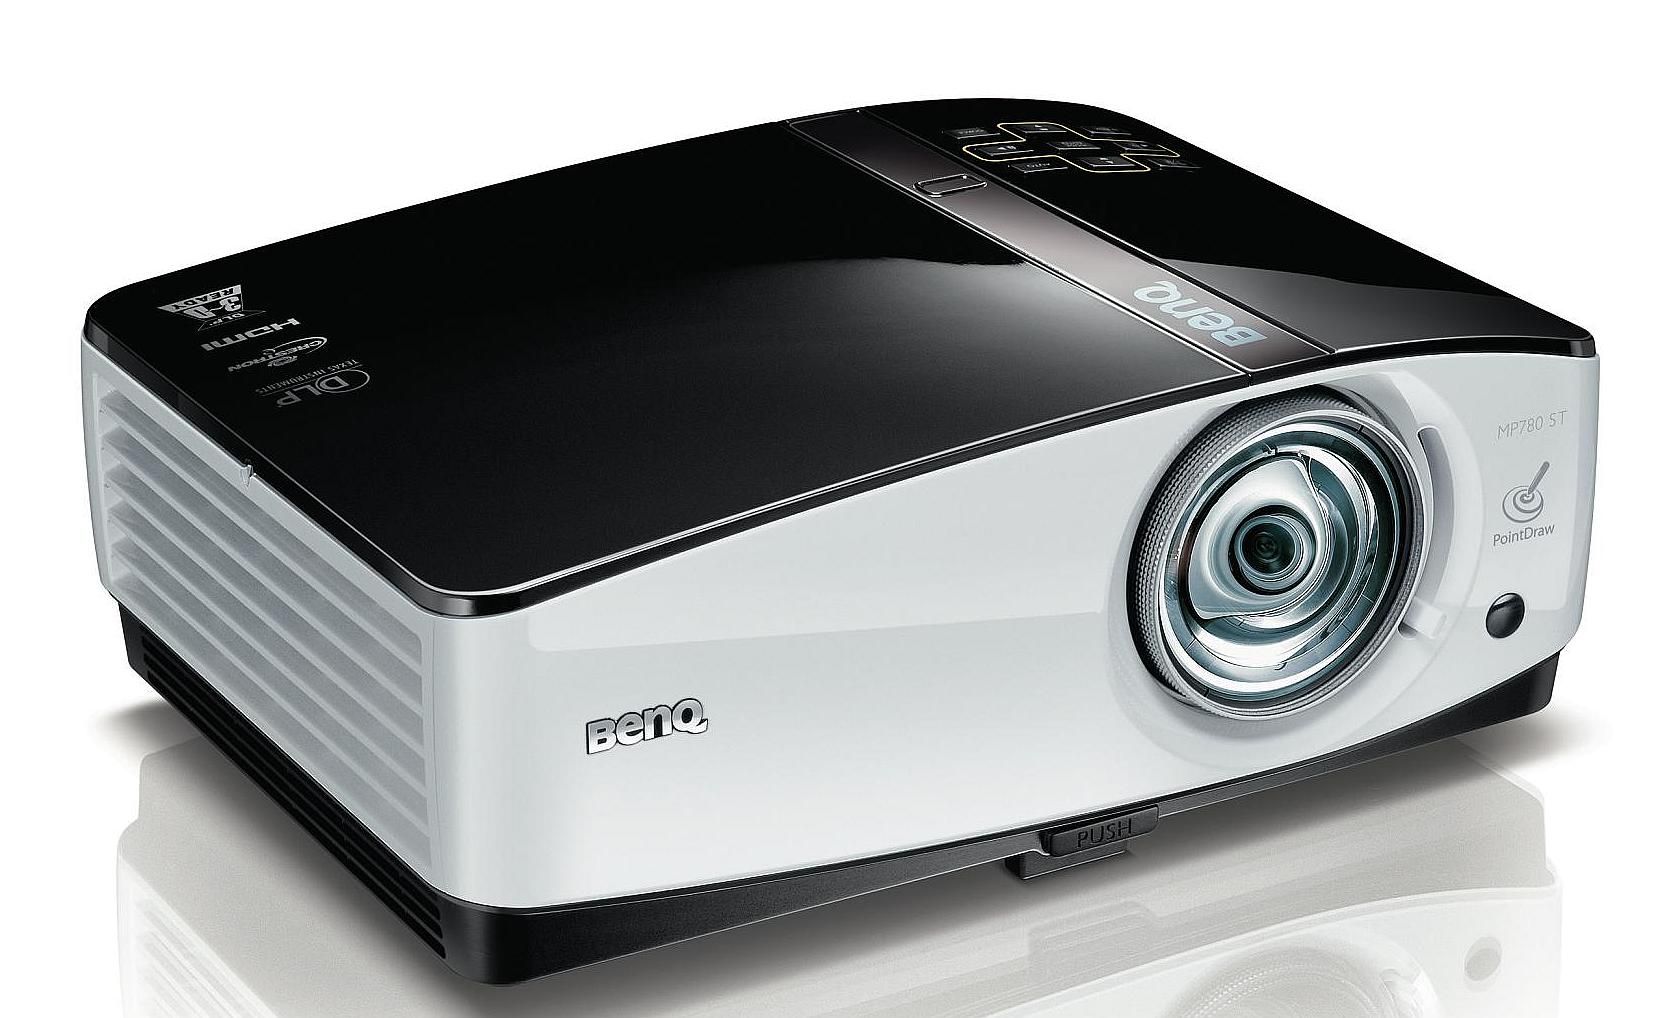 BenQ MP780ST – Proiectorul 3 in 1 [REVIEW]